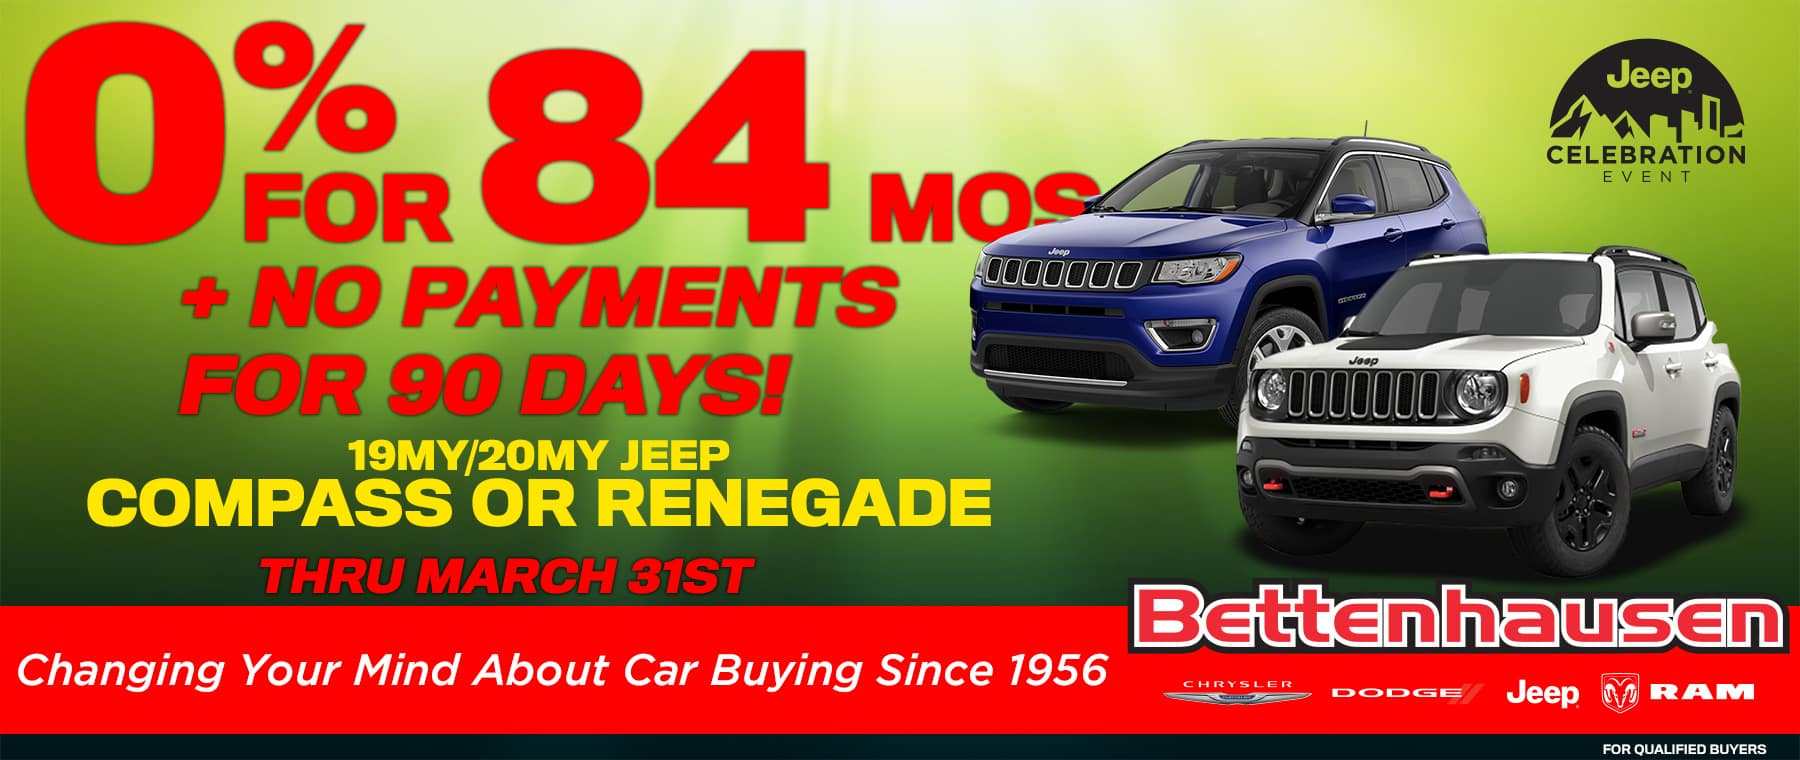 Jeep Compass and Renegade